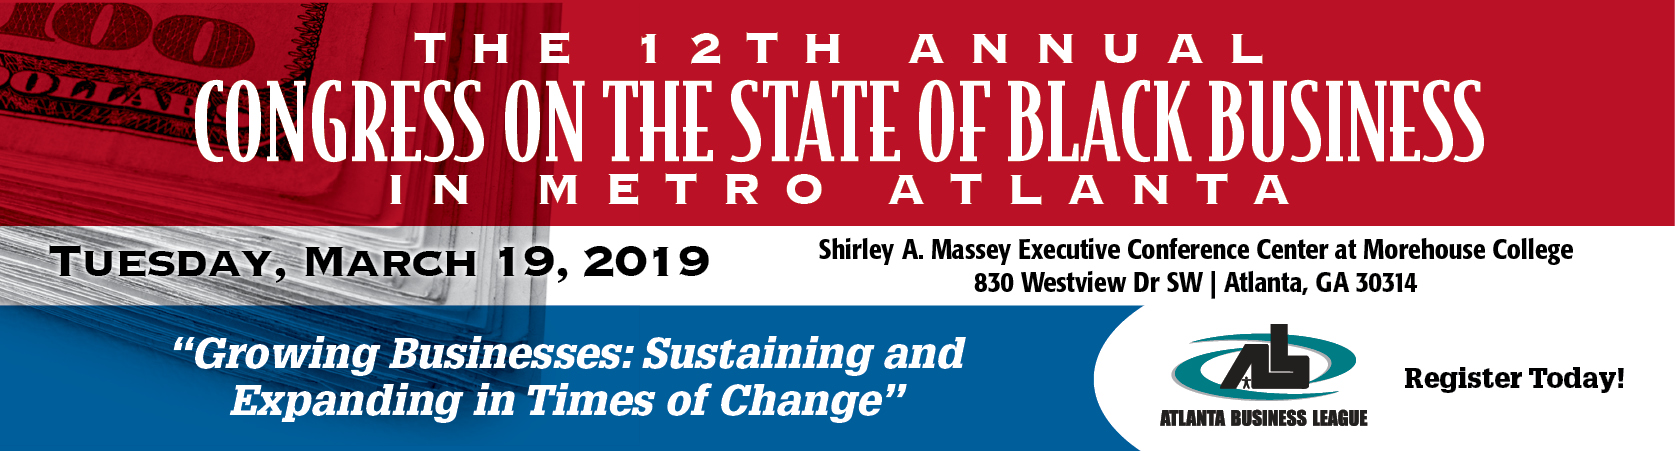 2019 ABL Congress on the State of Black Business (12th)